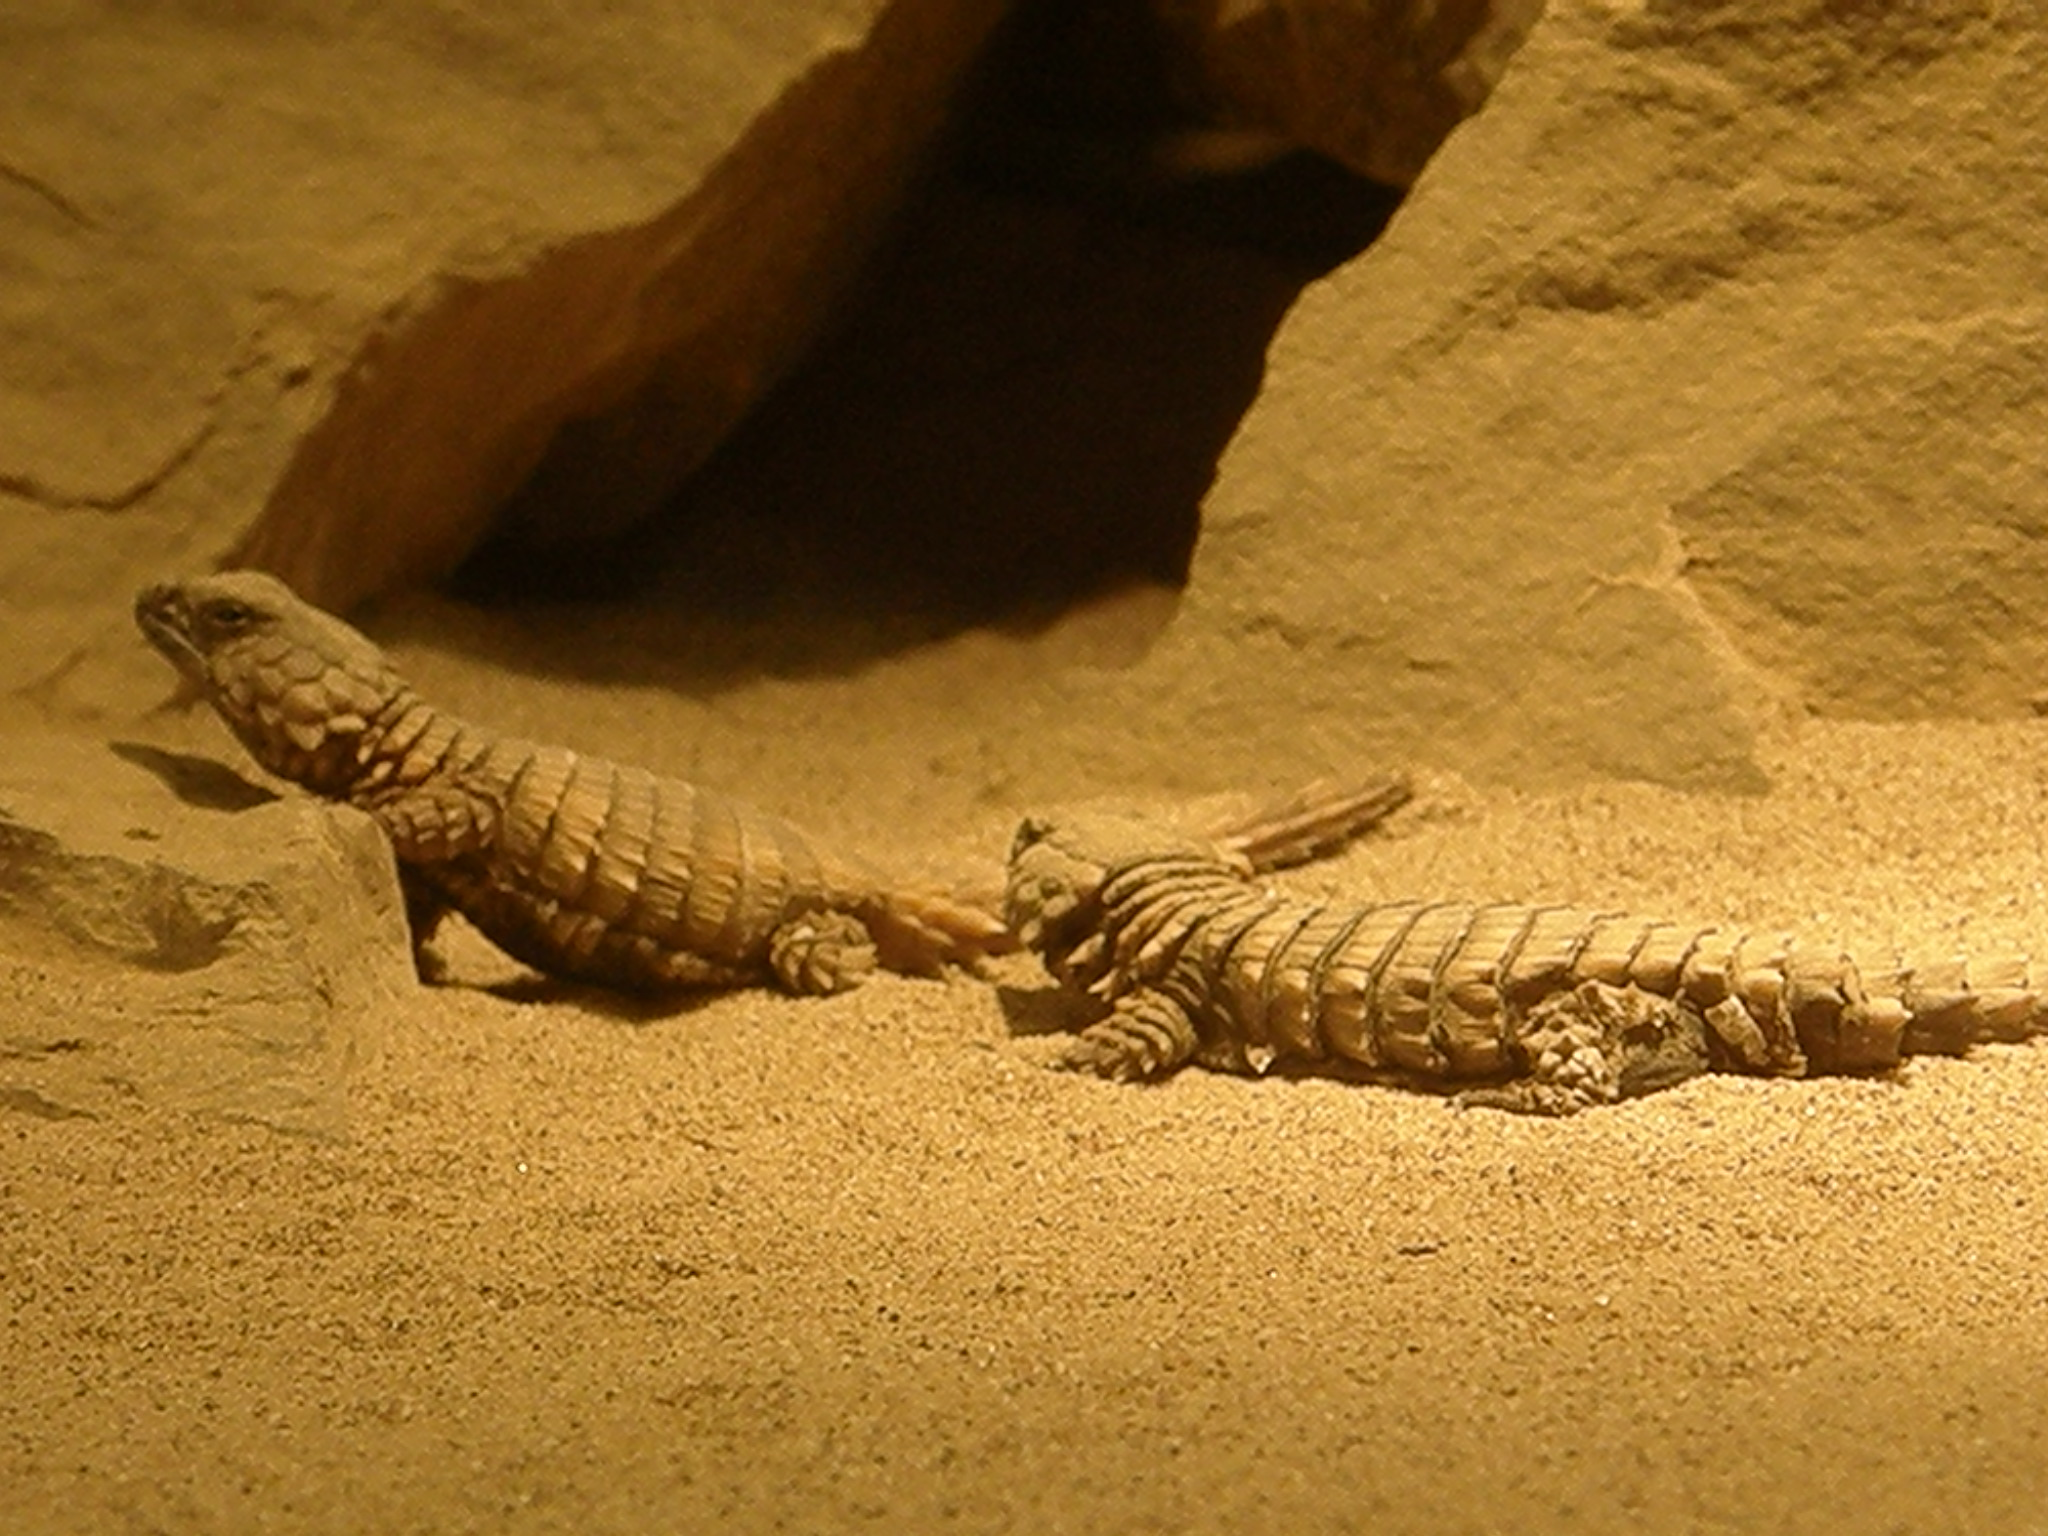 Armadillo girdle tailed lizard